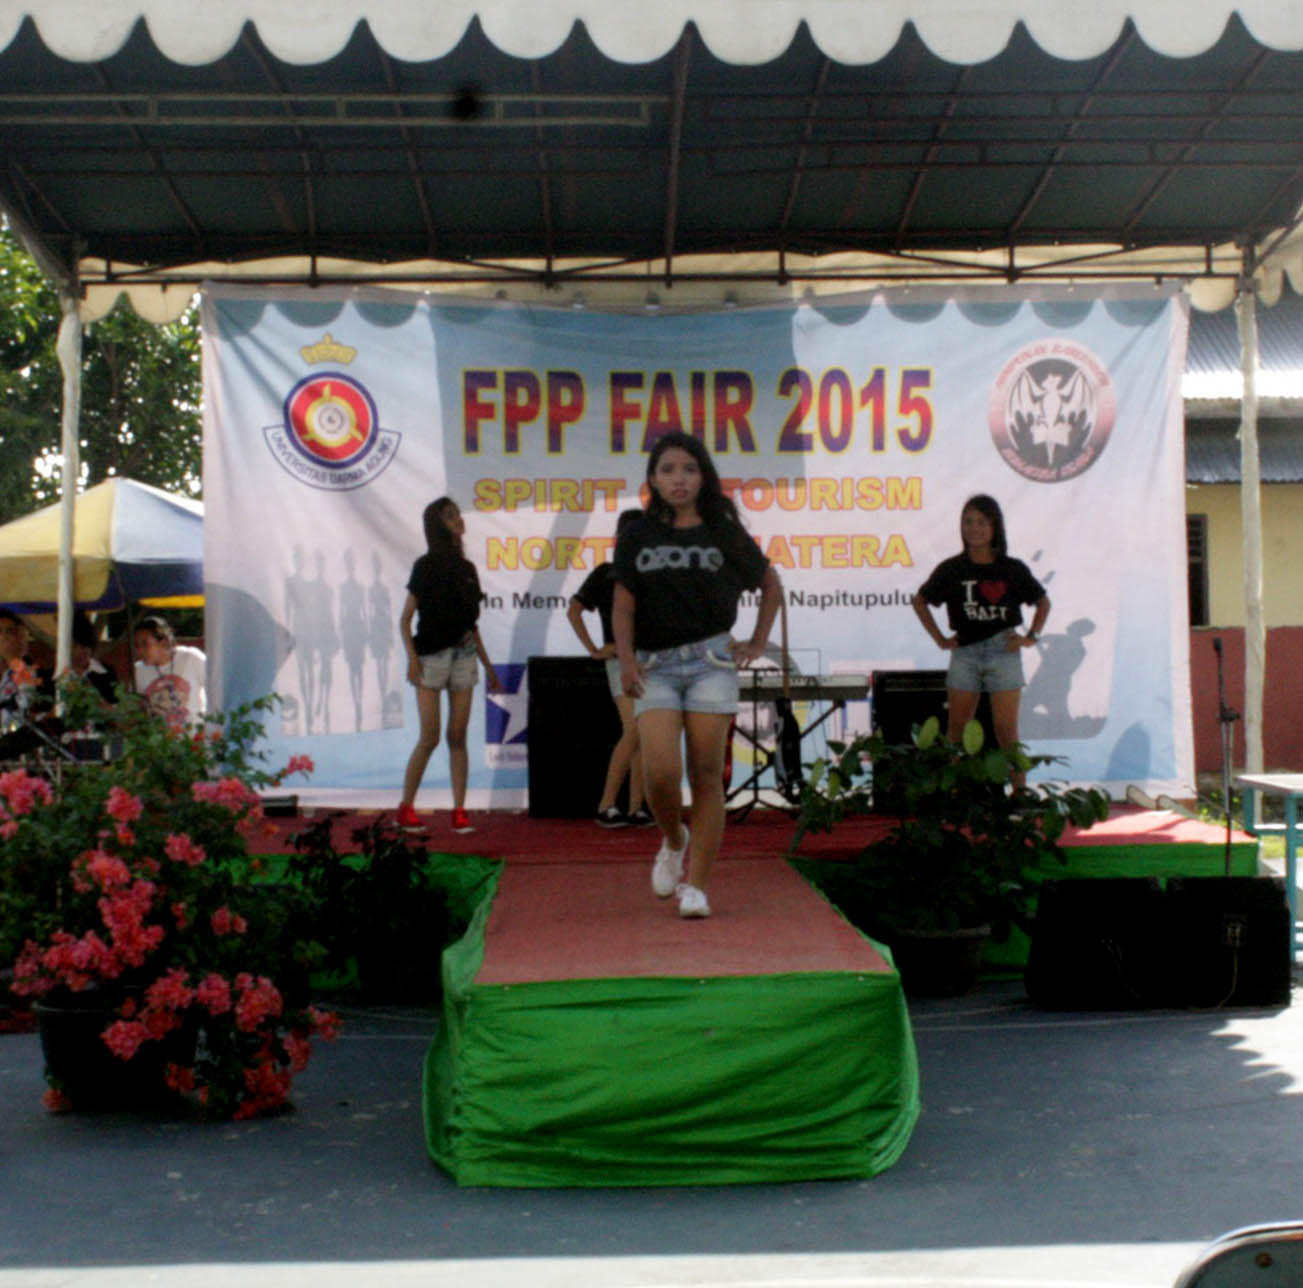 PESERTA MODEL FPP FAIR 2015